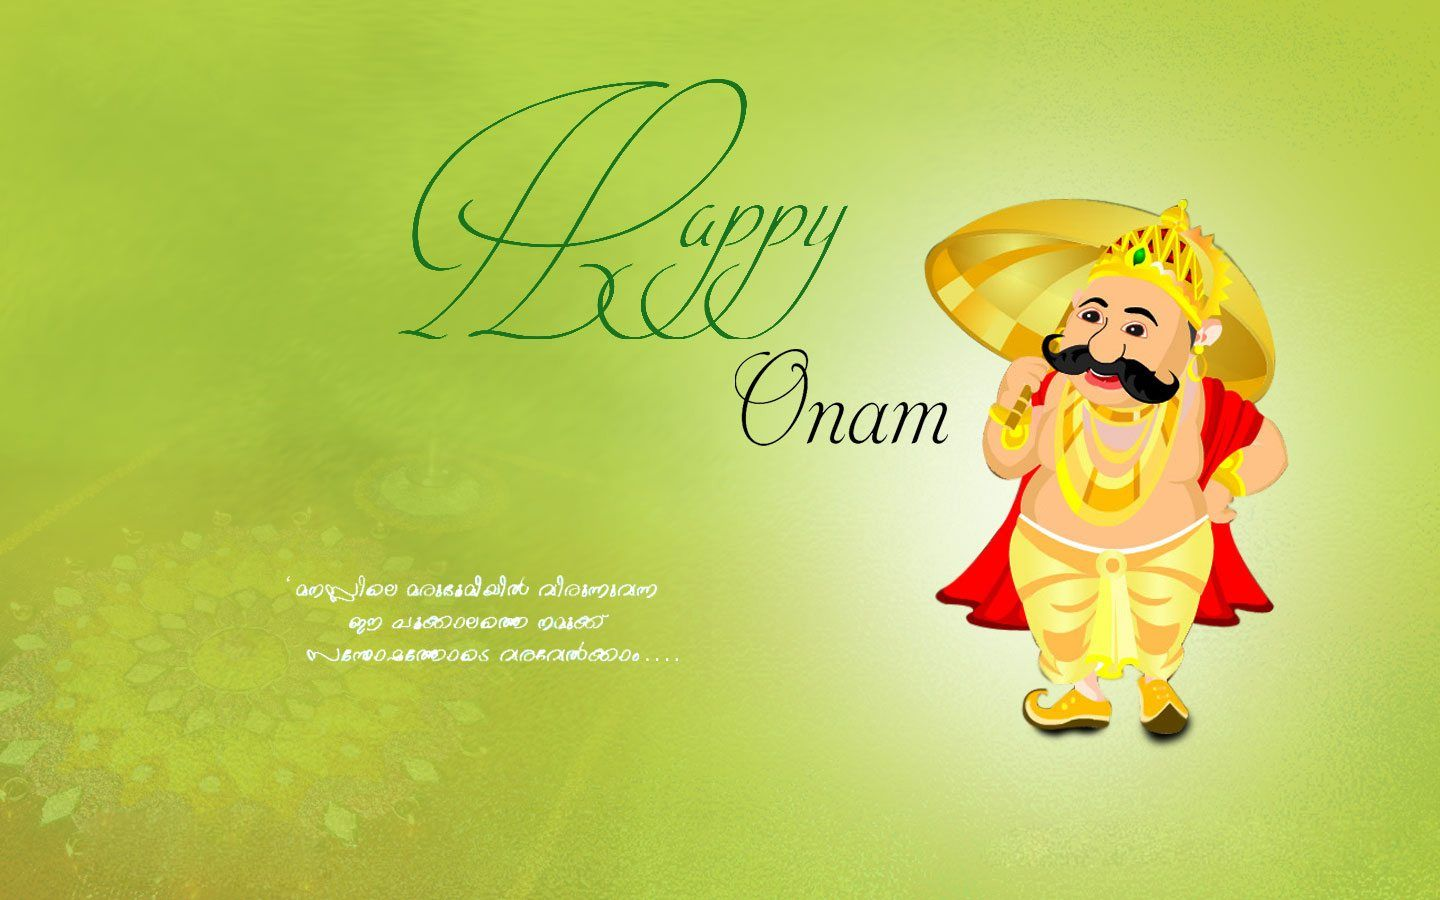 Wish you happy onam best wishes happy onam pinterest wallpaper wish you happy onam best wishes kristyandbryce Image collections